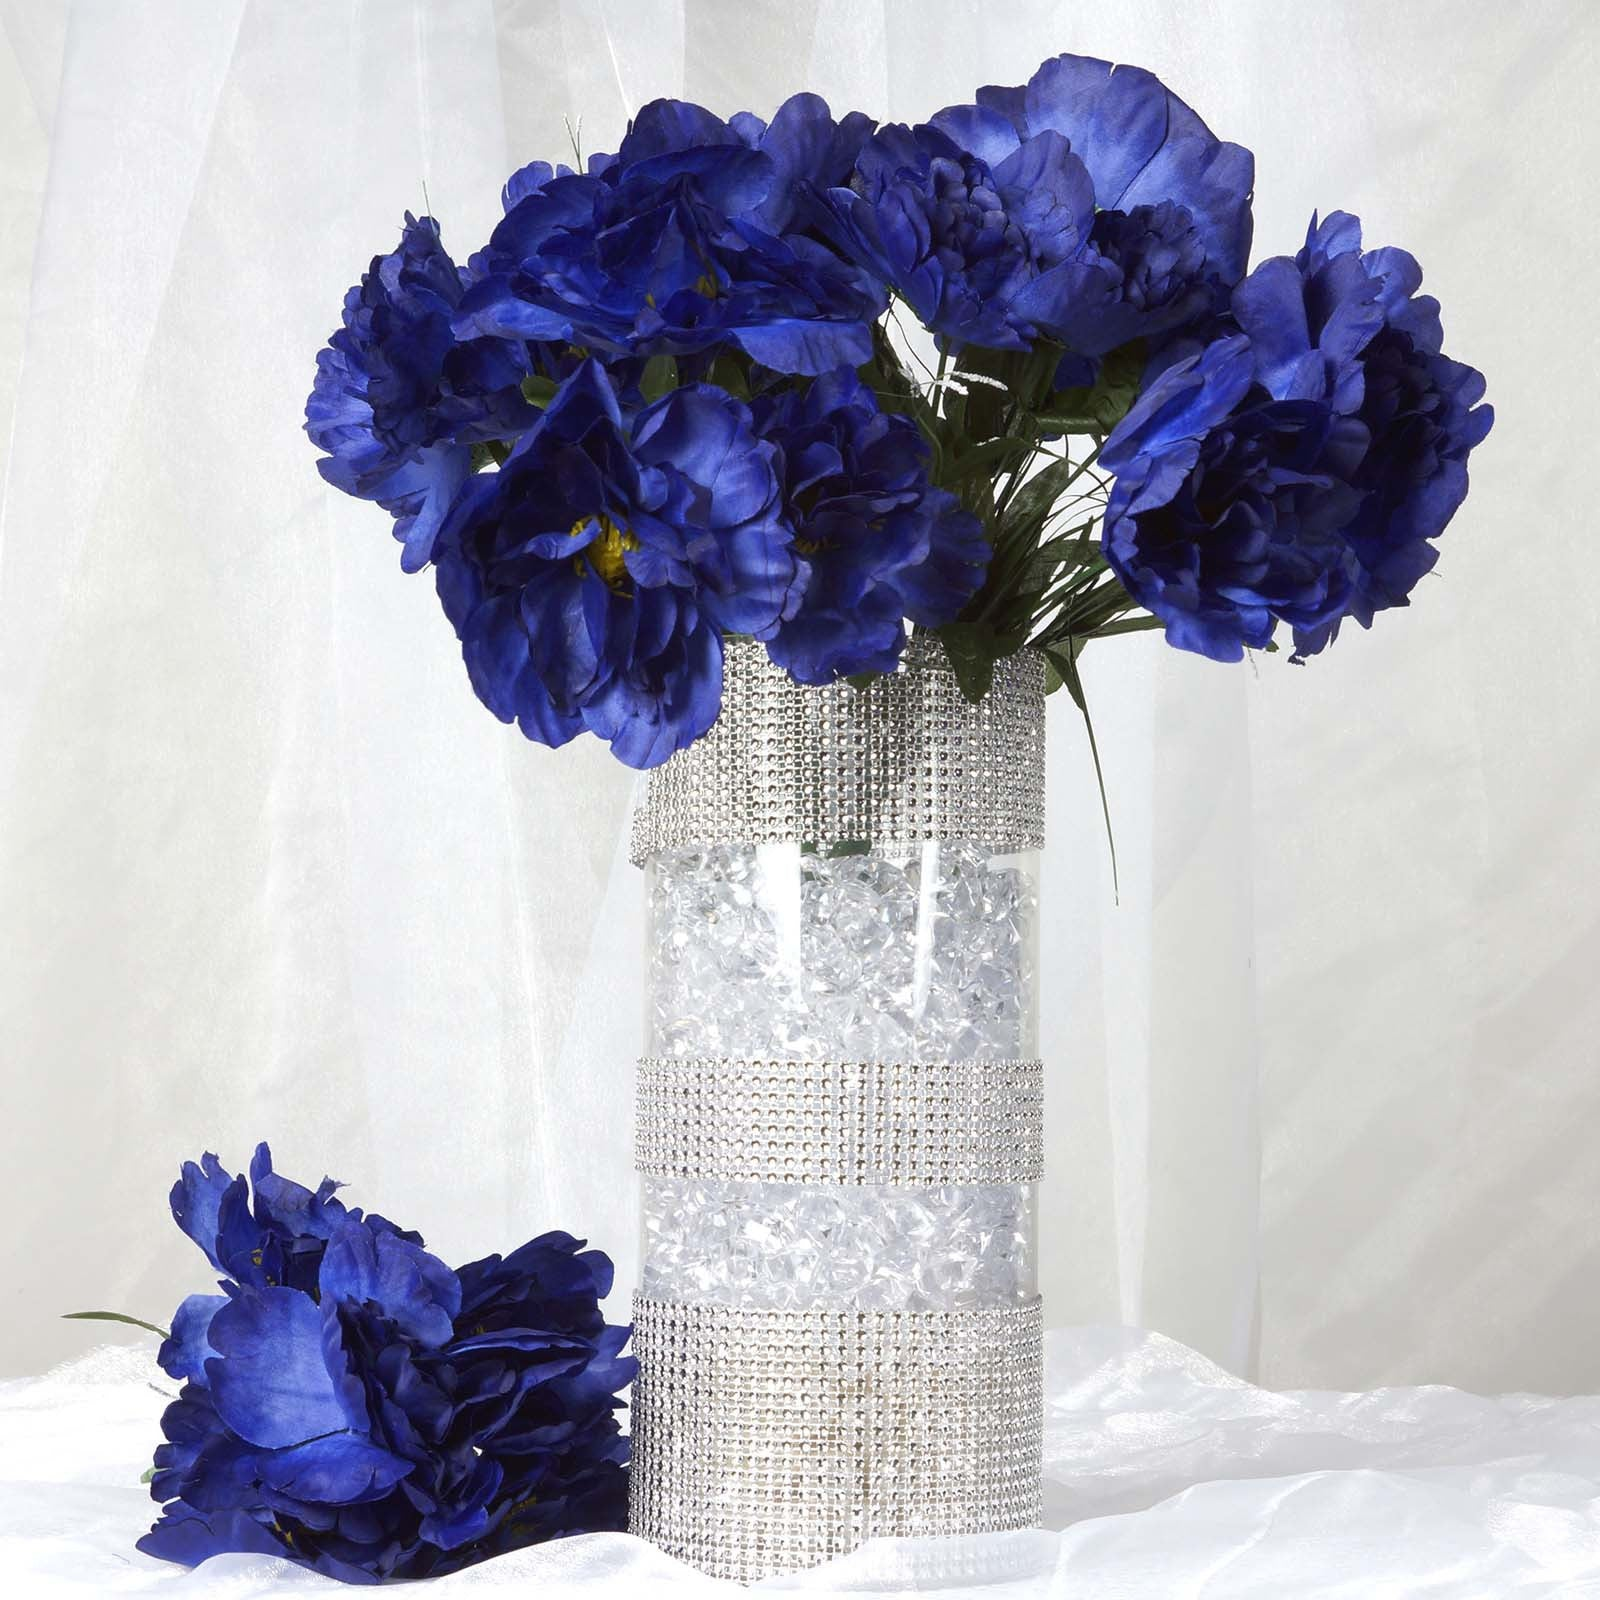 12 Bush 60 Pcs Navy Blue Artificial Silk Peony Flowers Tablecloths